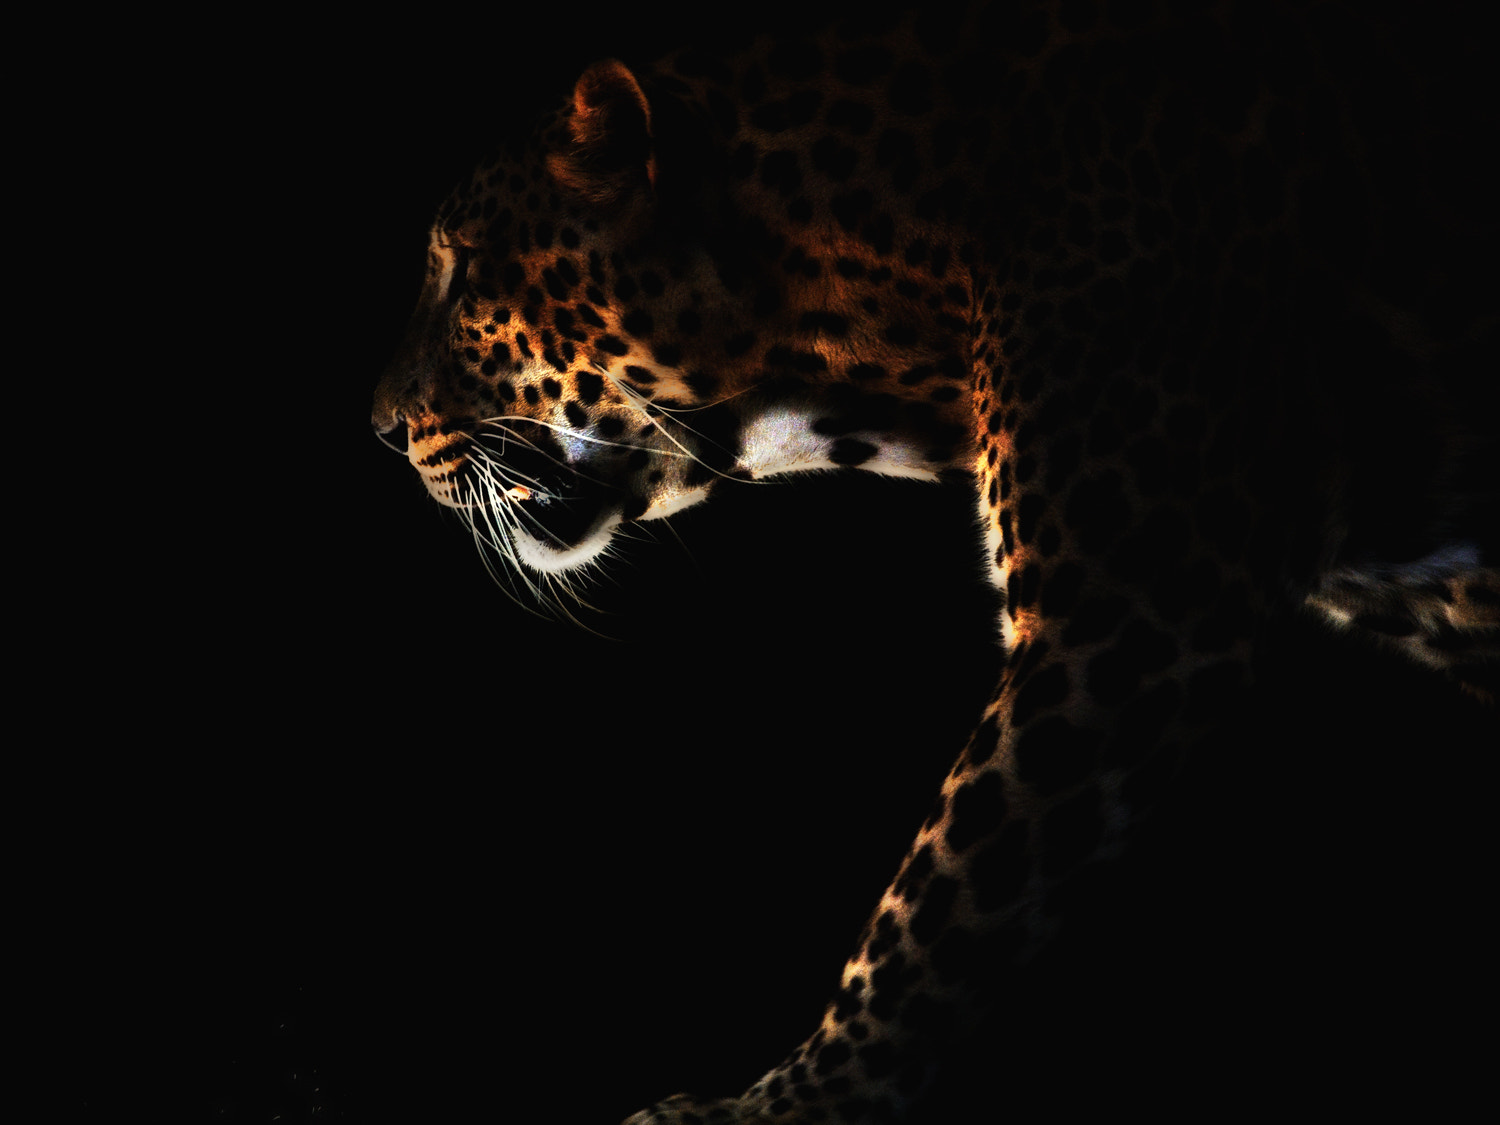 Photograph Through the dark by Henry Sudarman on 500px